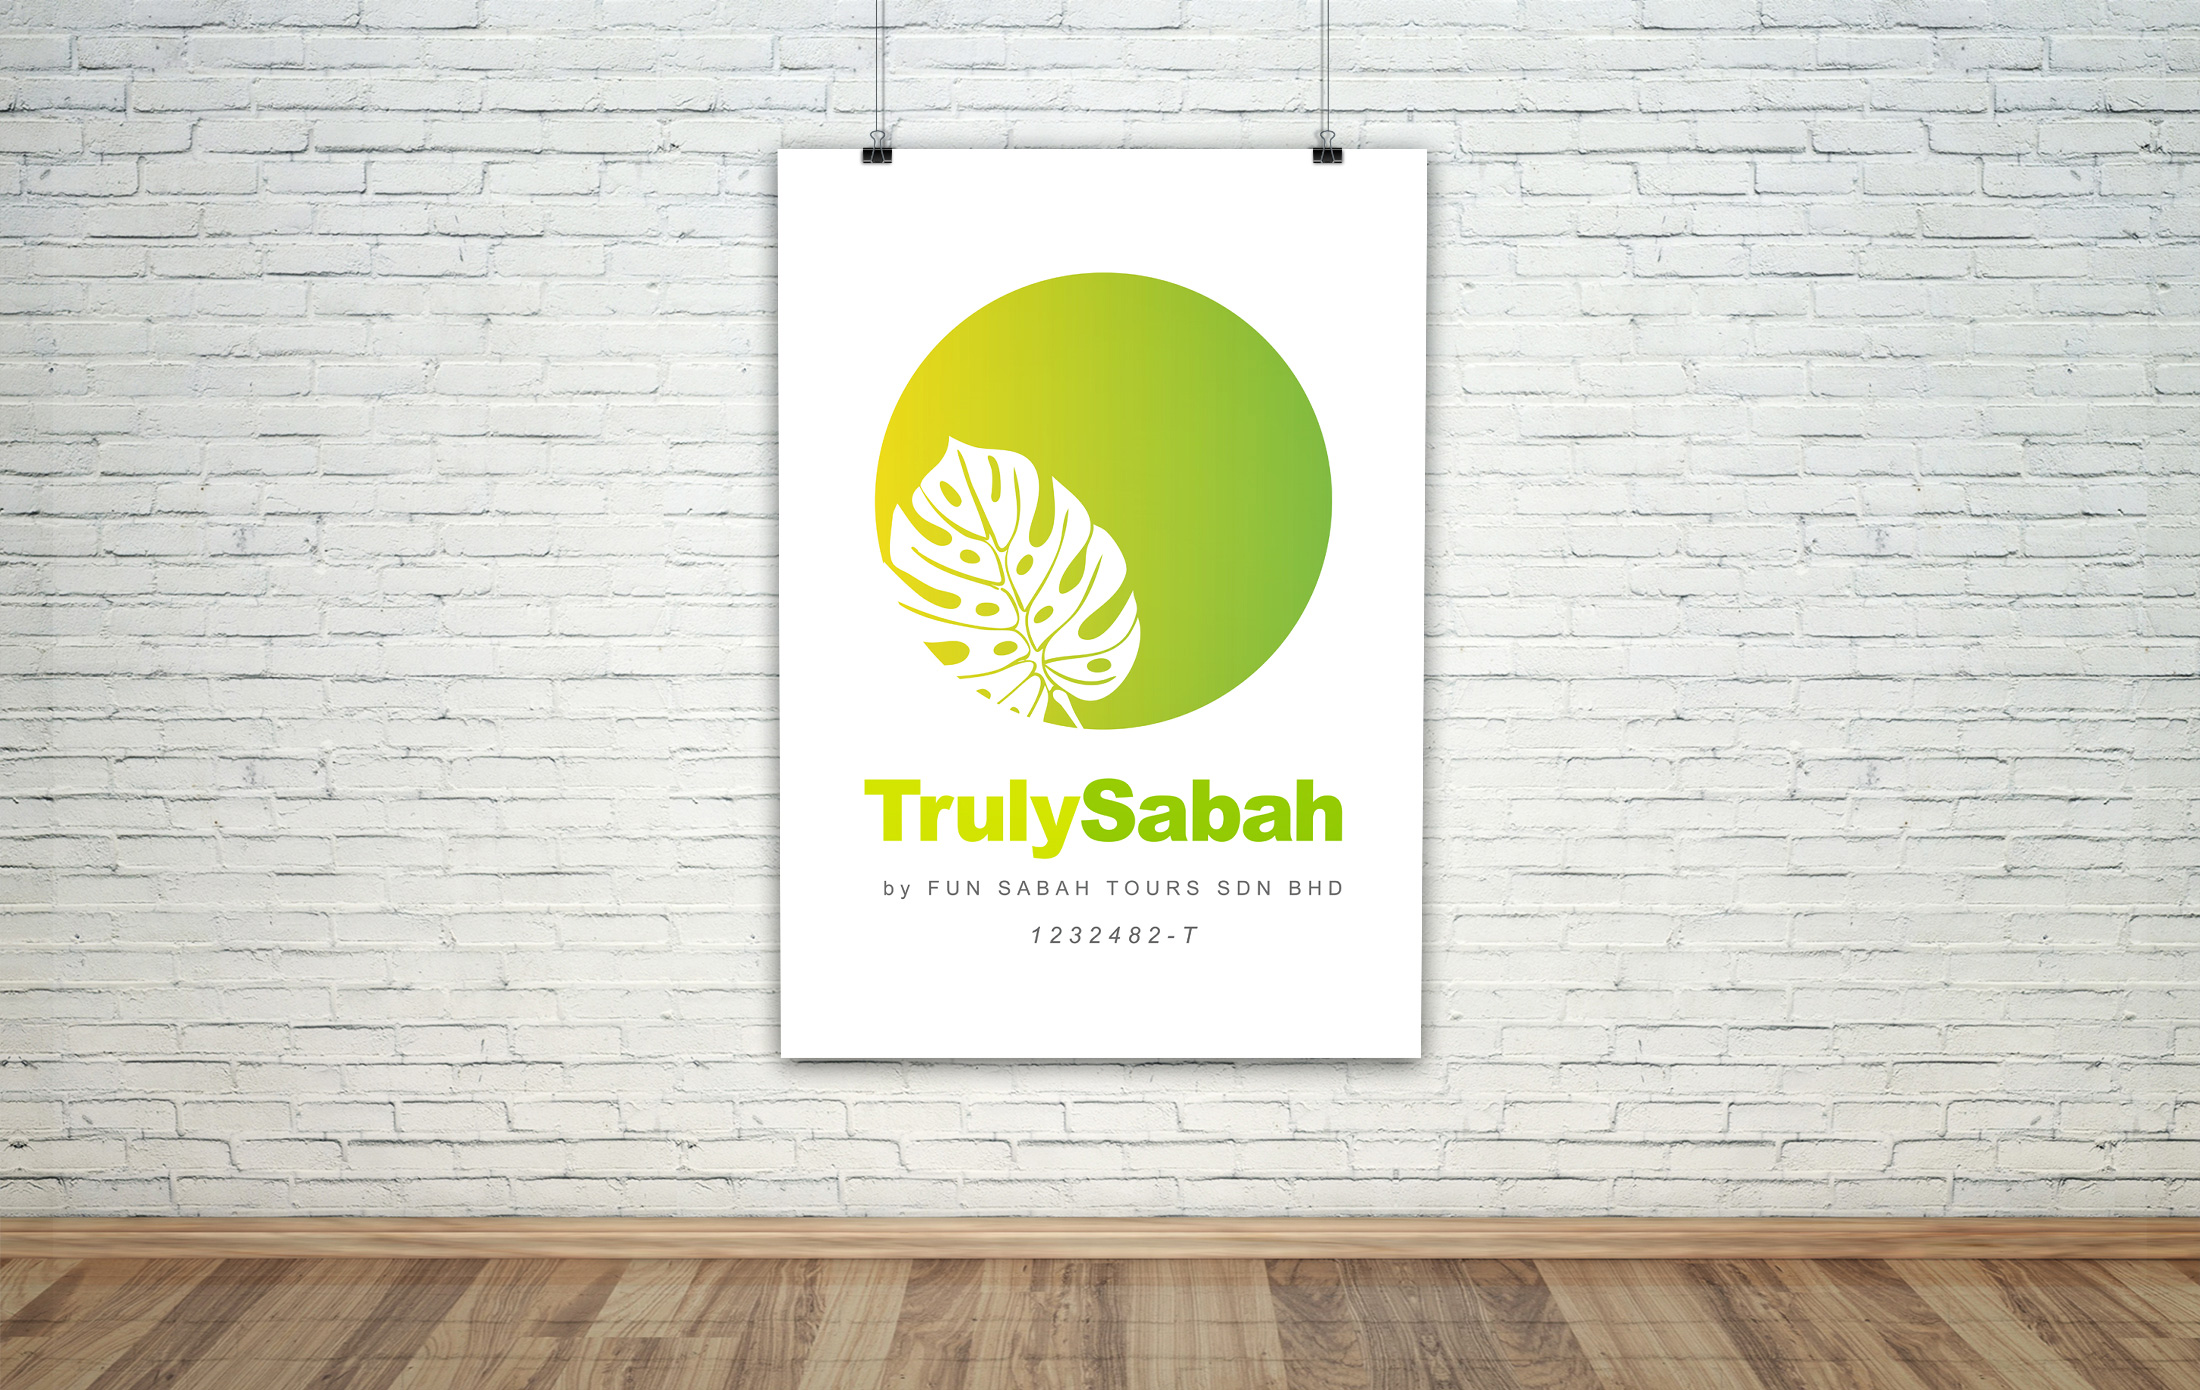 Truly Sabah Project